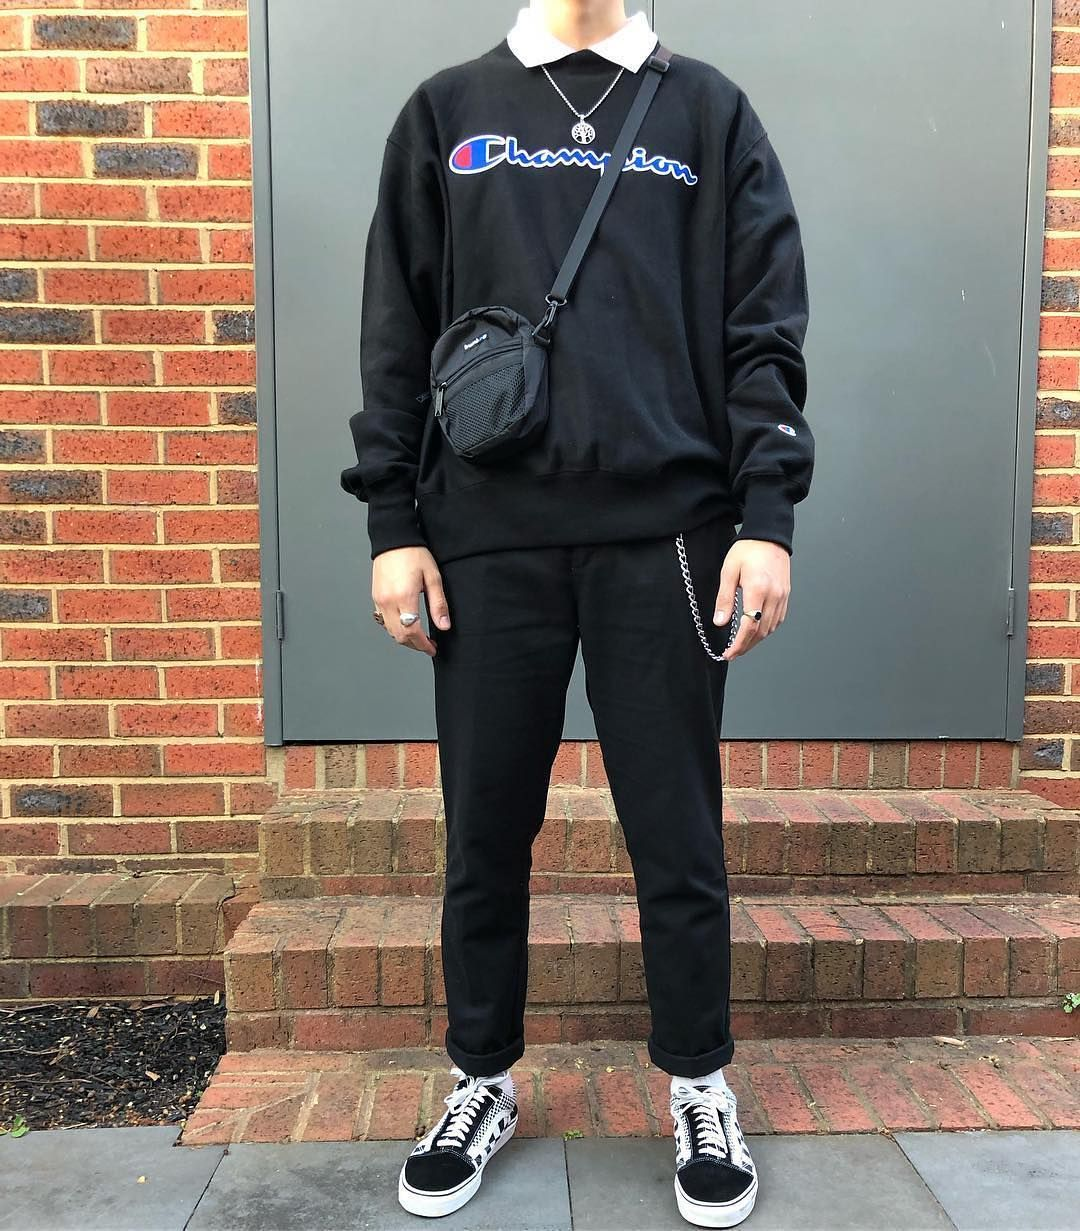 New Collection Click On Our Website Streetwear Highsnobiety Fashion Street Styles Urban Aes Streetwear Men Outfits Layering Outfits Street Wear [ 1231 x 1080 Pixel ]